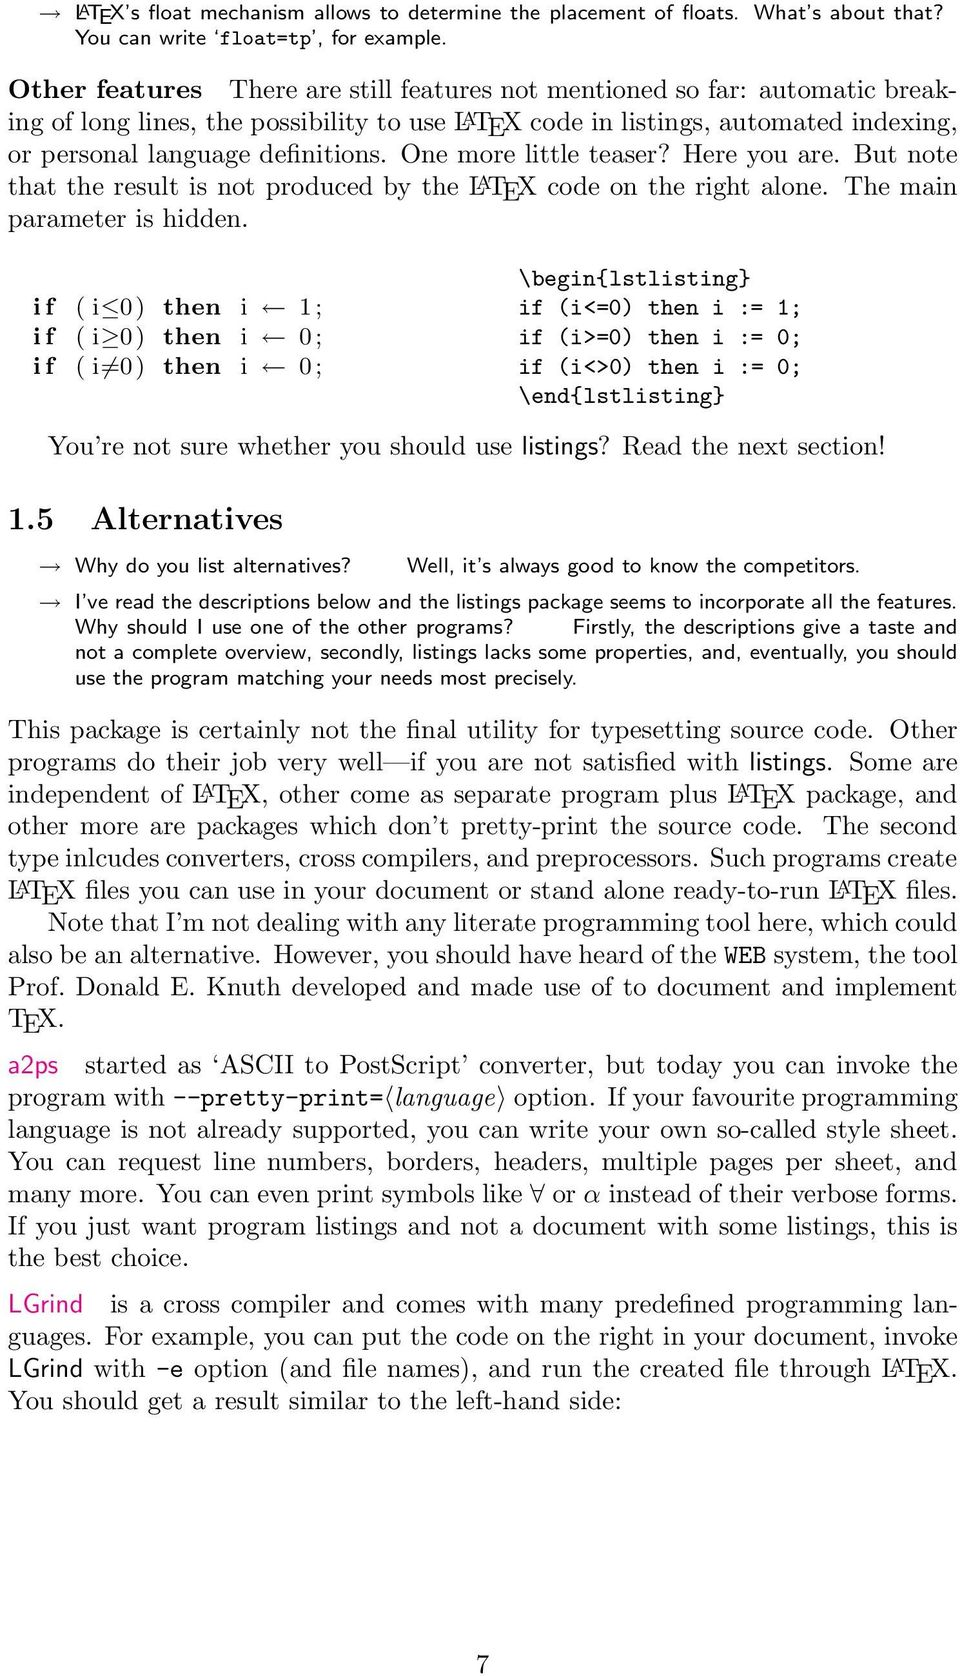 The Listings Package - PDF